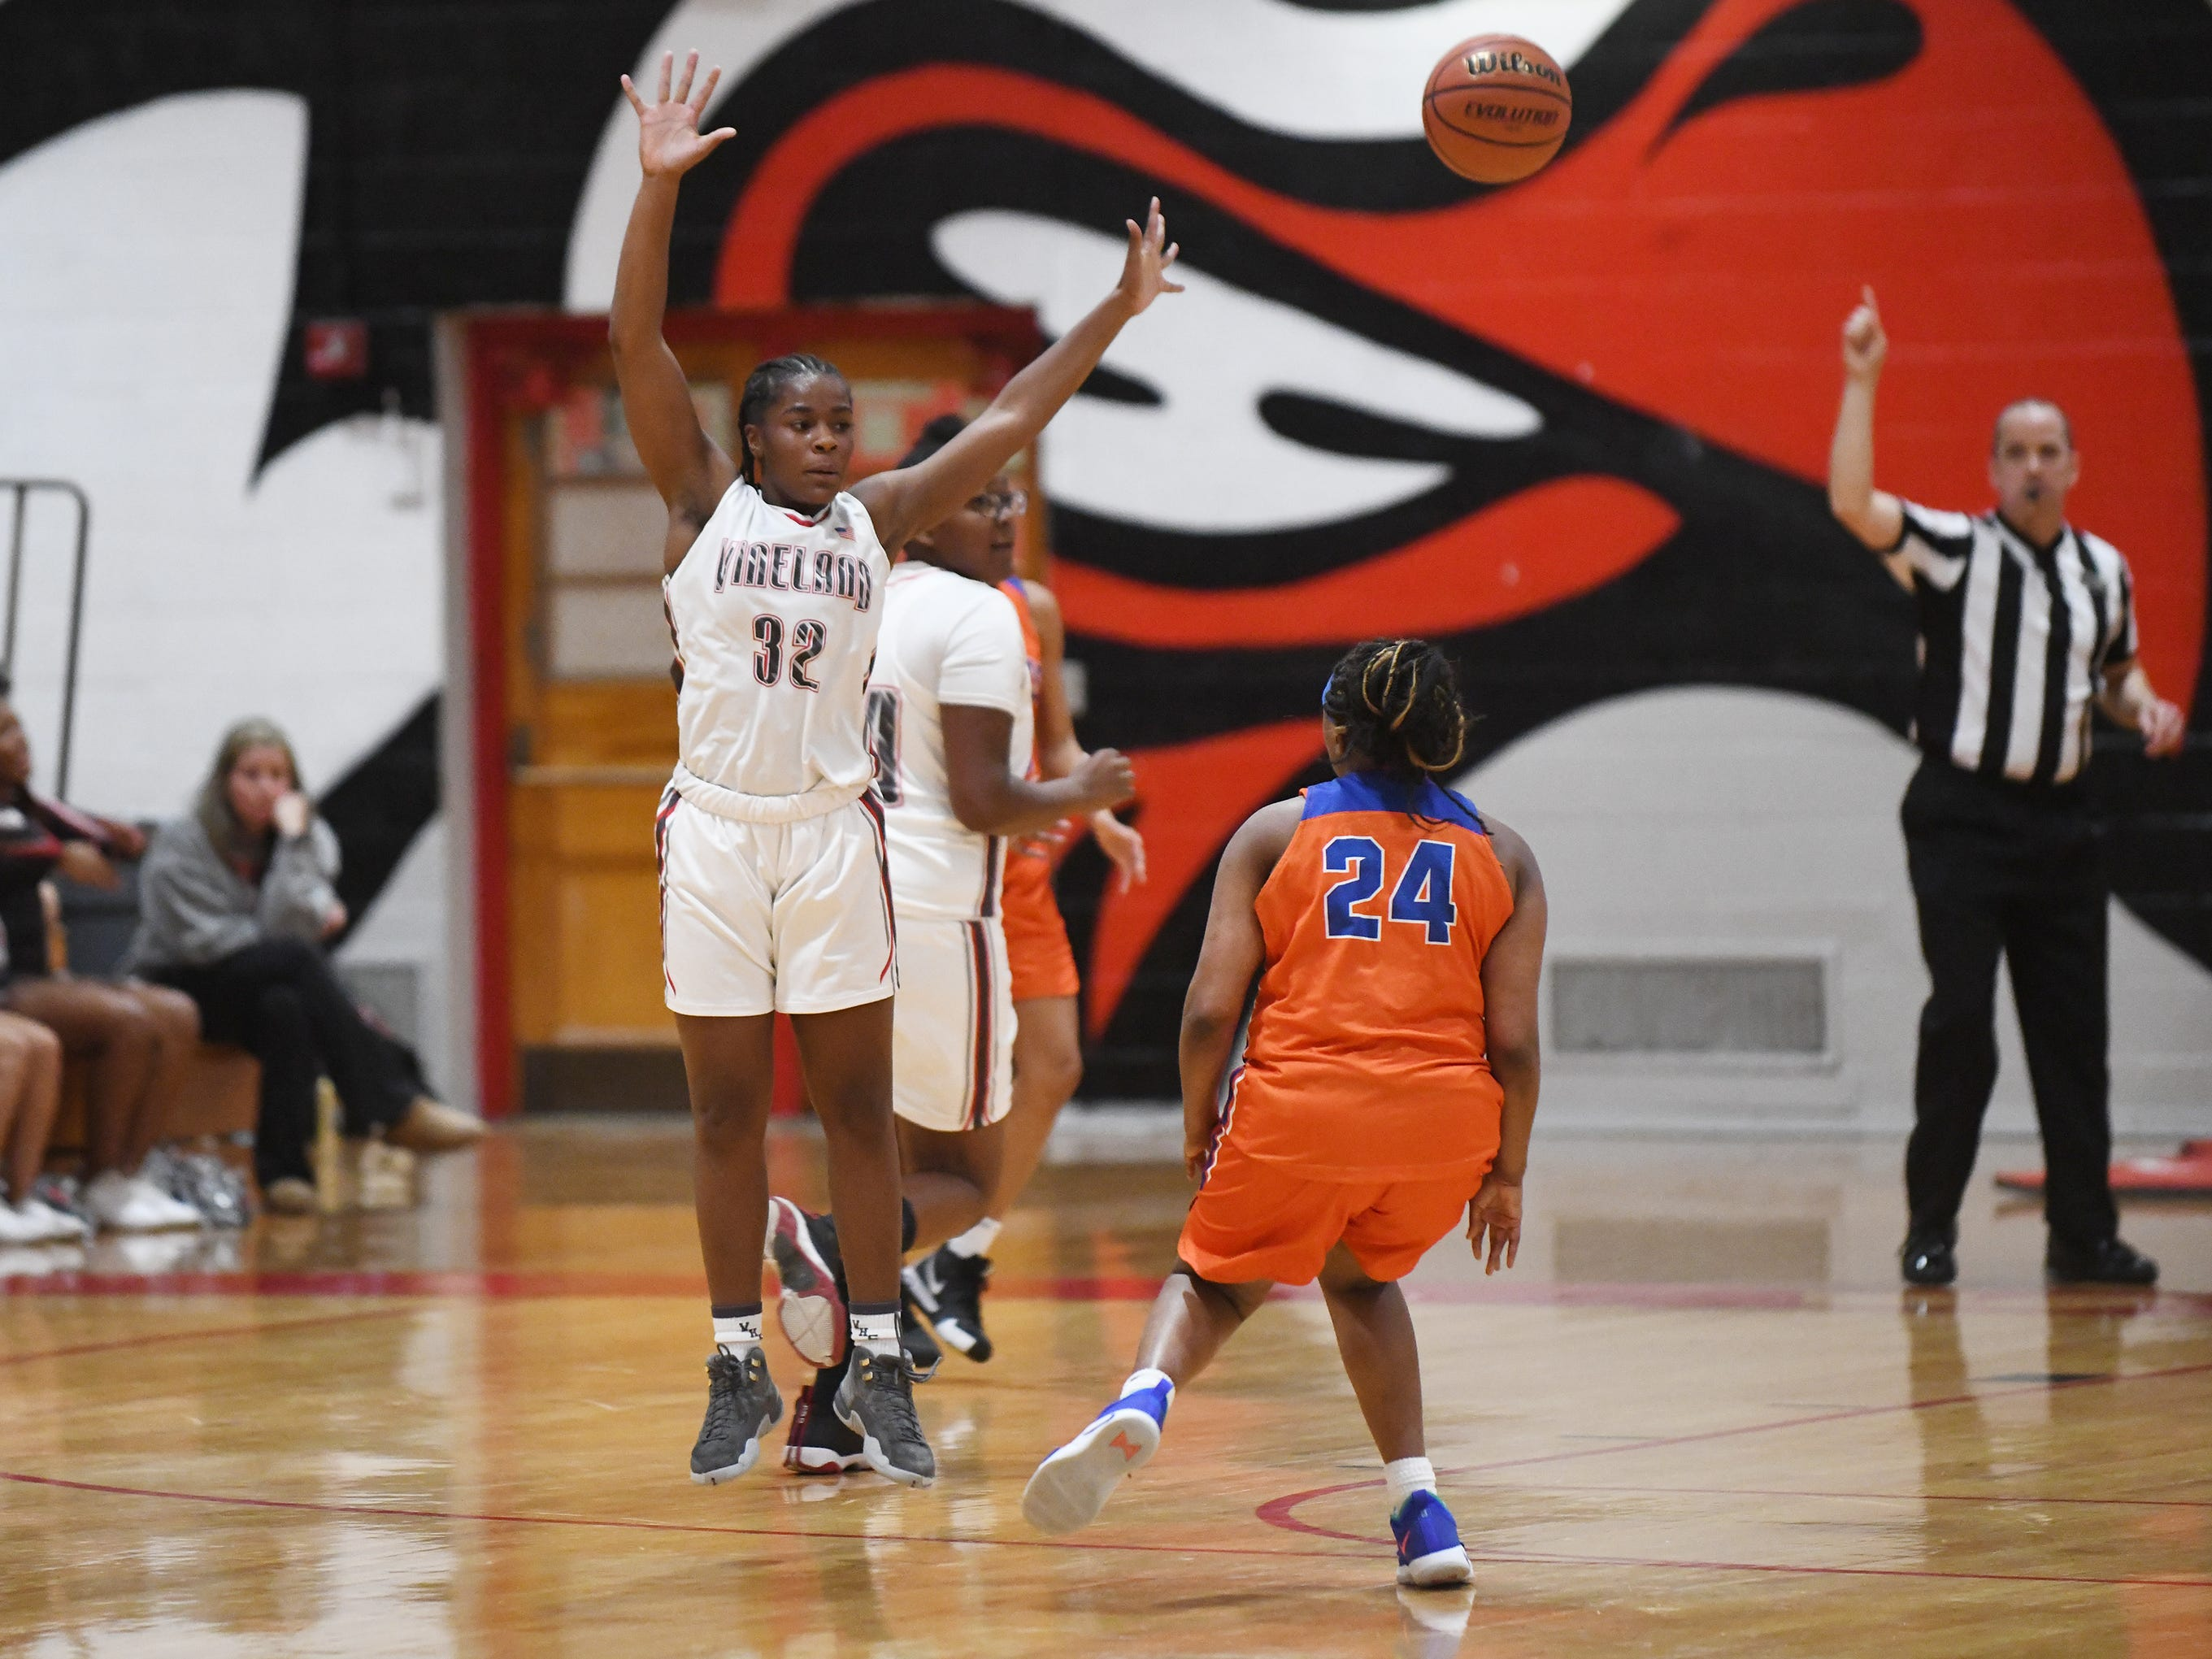 Vineland High School senior Briel Herbert became a member of the girls' basketball team's 1,000-point club during a 57-35 triumph over Millville on Wednesday, Jan. 16, 2019.